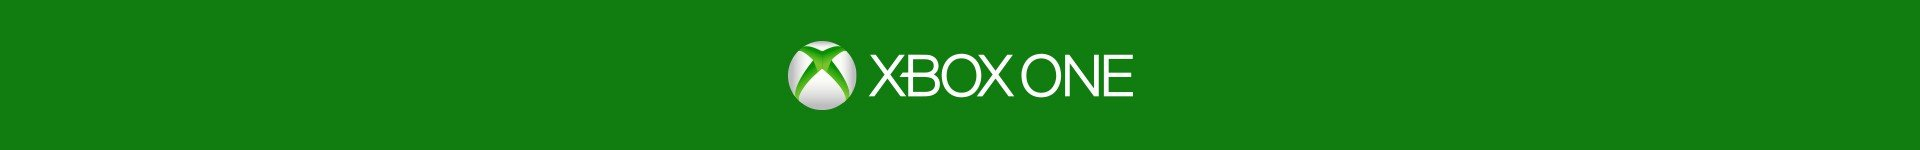 Buy Xbox One consoles at Coolshop